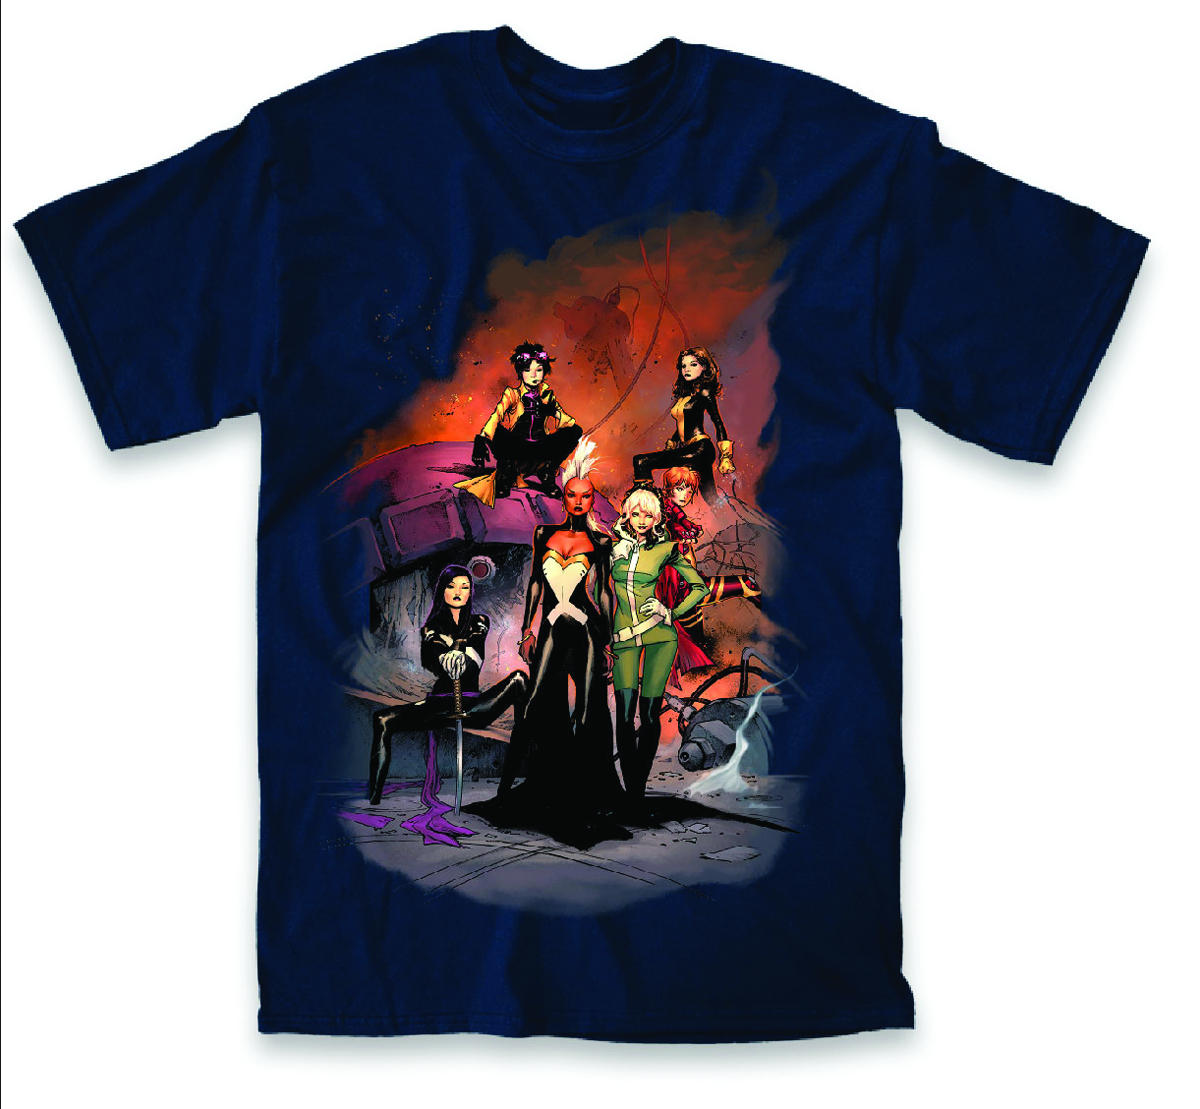 X-MEN GROUP LADY COVER PX NAVY T/S LG